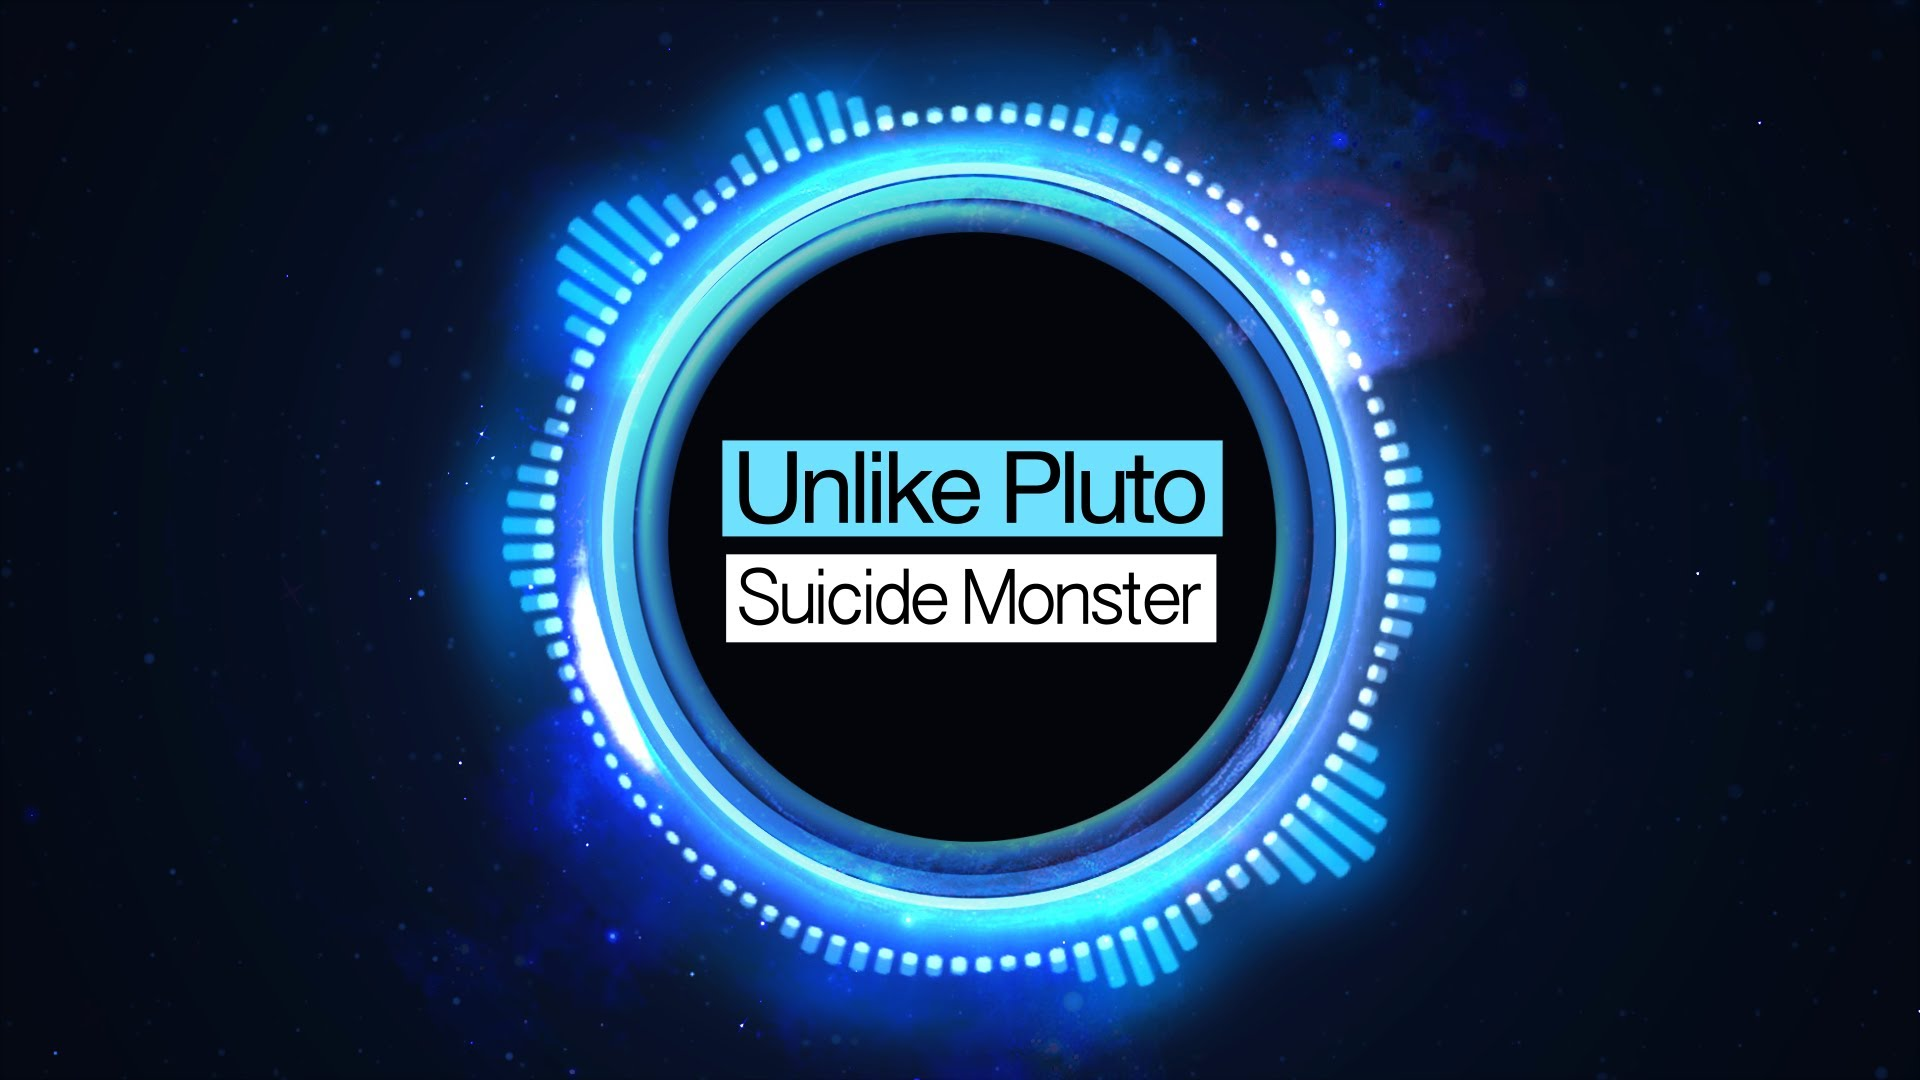 Unlike Pluto - Suicide Monster